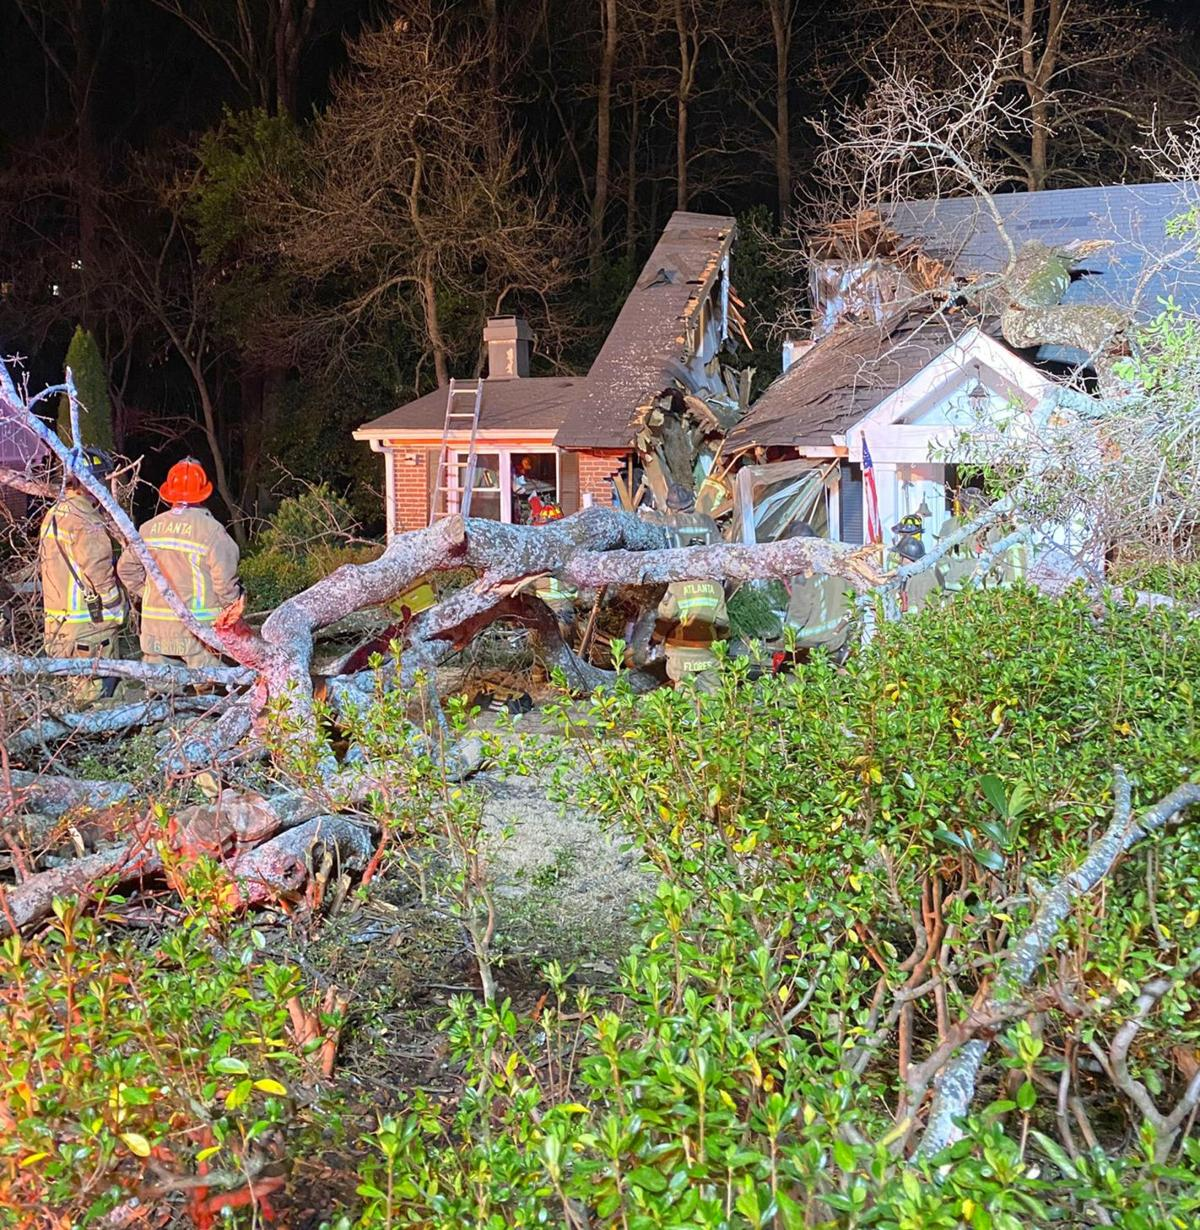 011520_MNS_tree_death_001 firefighters at house with tree in it